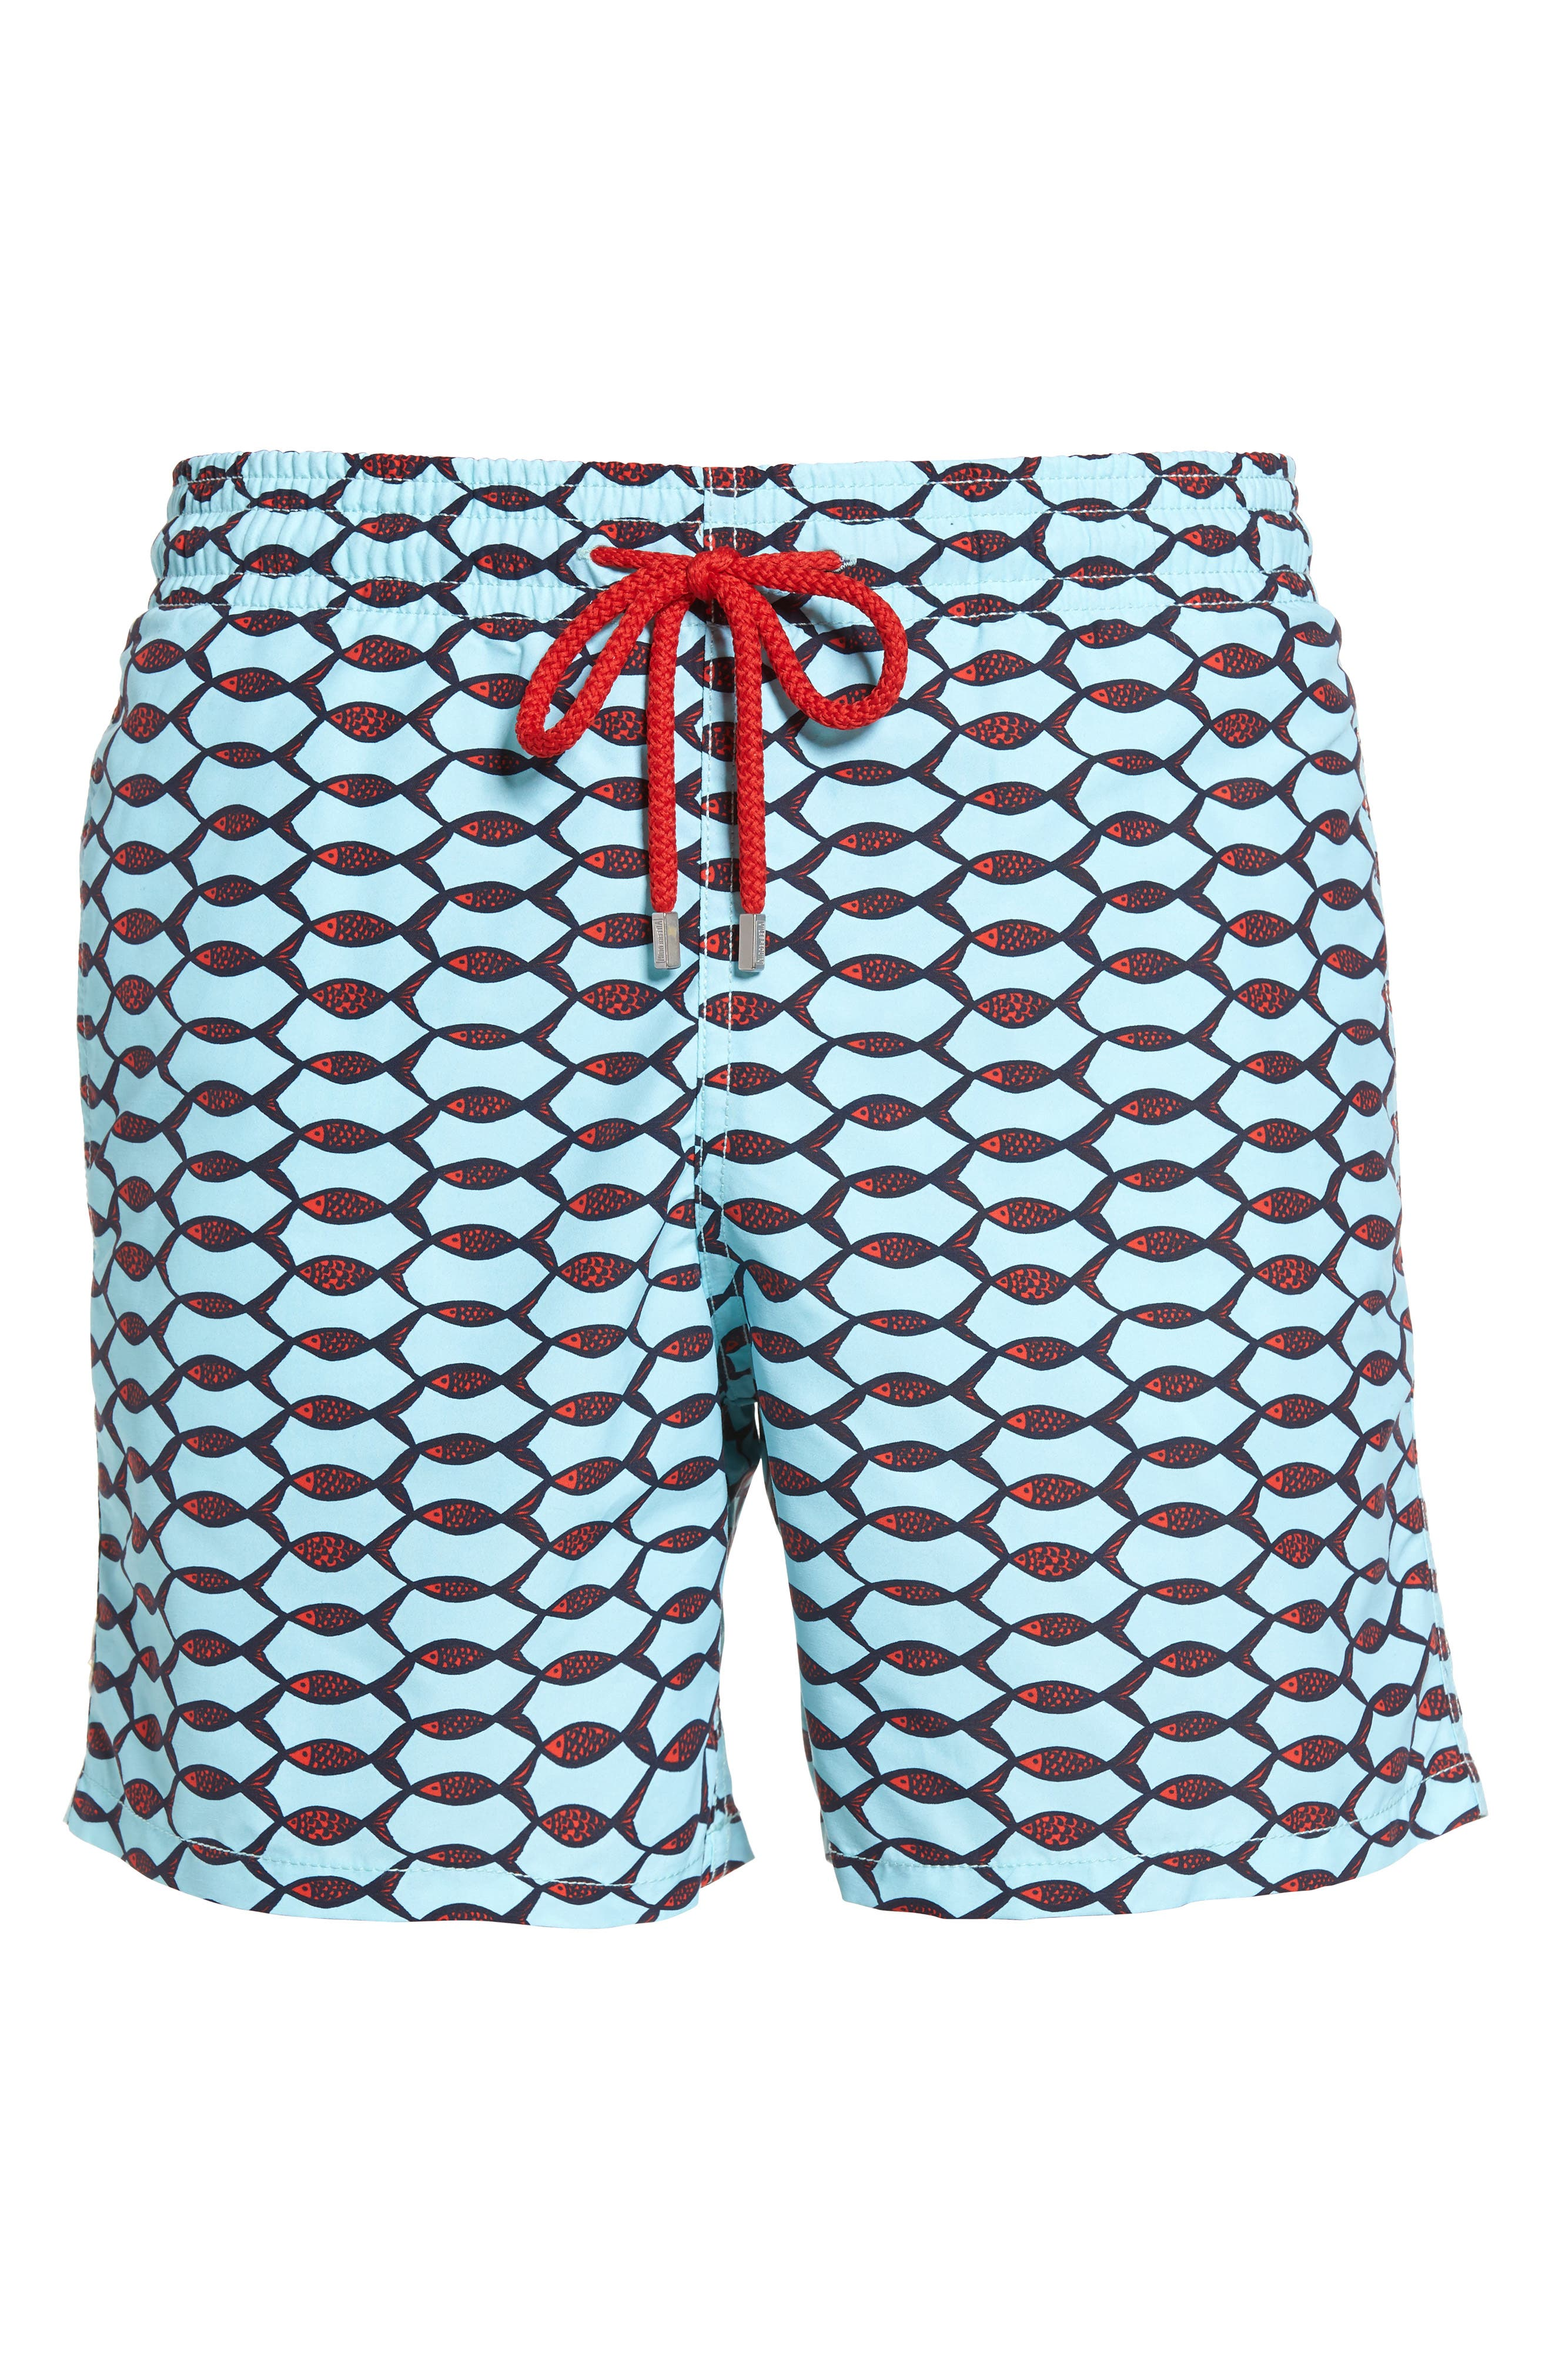 Moorea Fishnet Print Swim Trunks,                             Alternate thumbnail 6, color,                             FROSTED BLUE